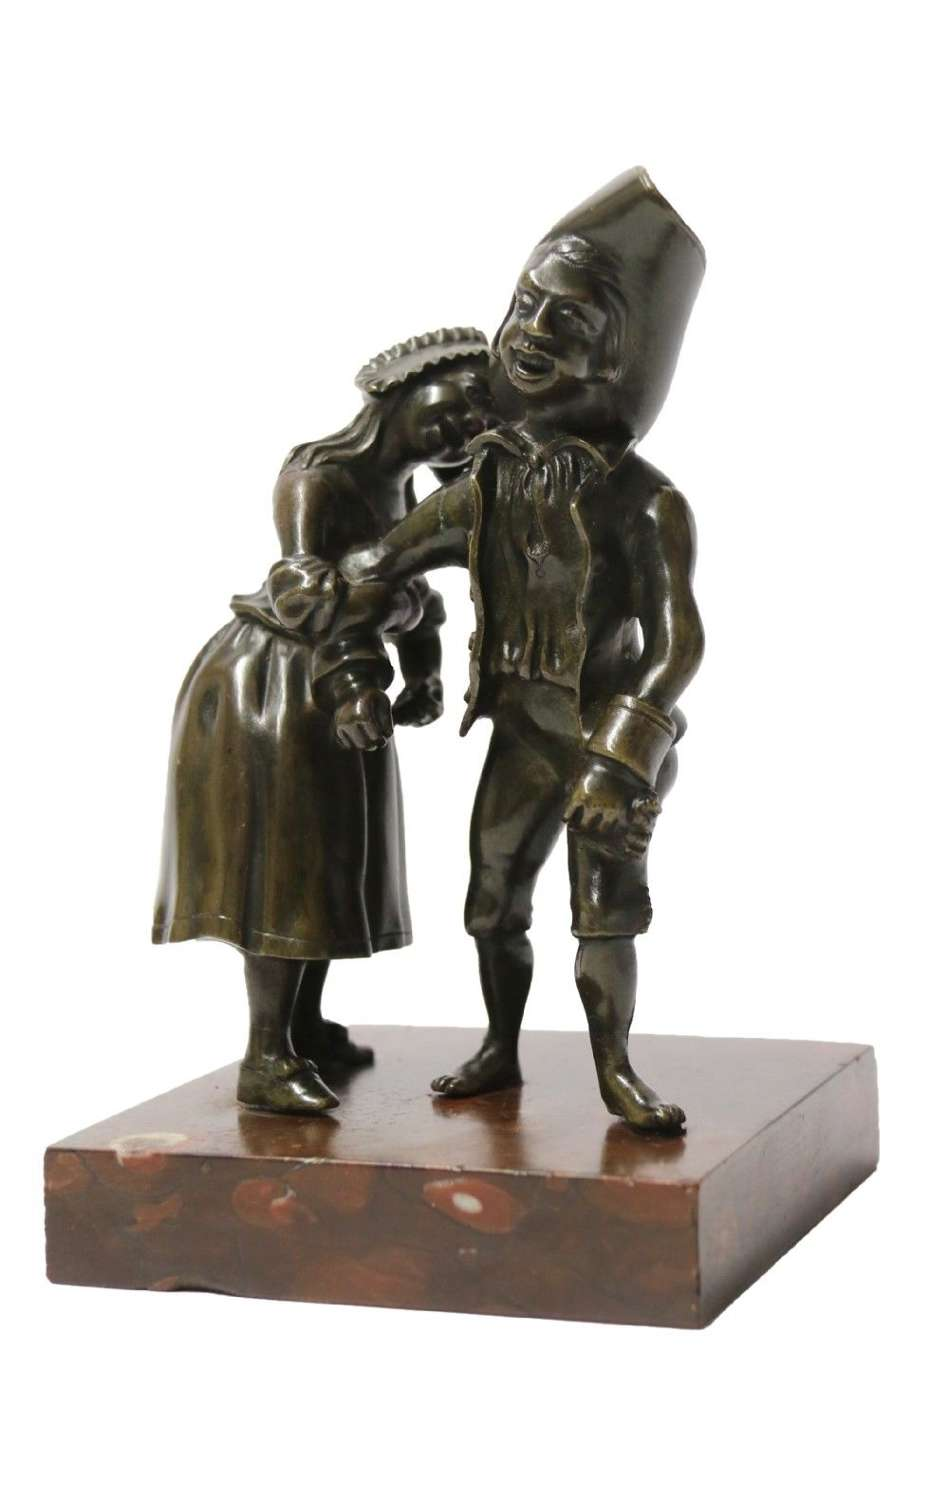 A Most Amusing 19th C Italian Bronze Study Of A Young Couple Dancing In A Drunken State.